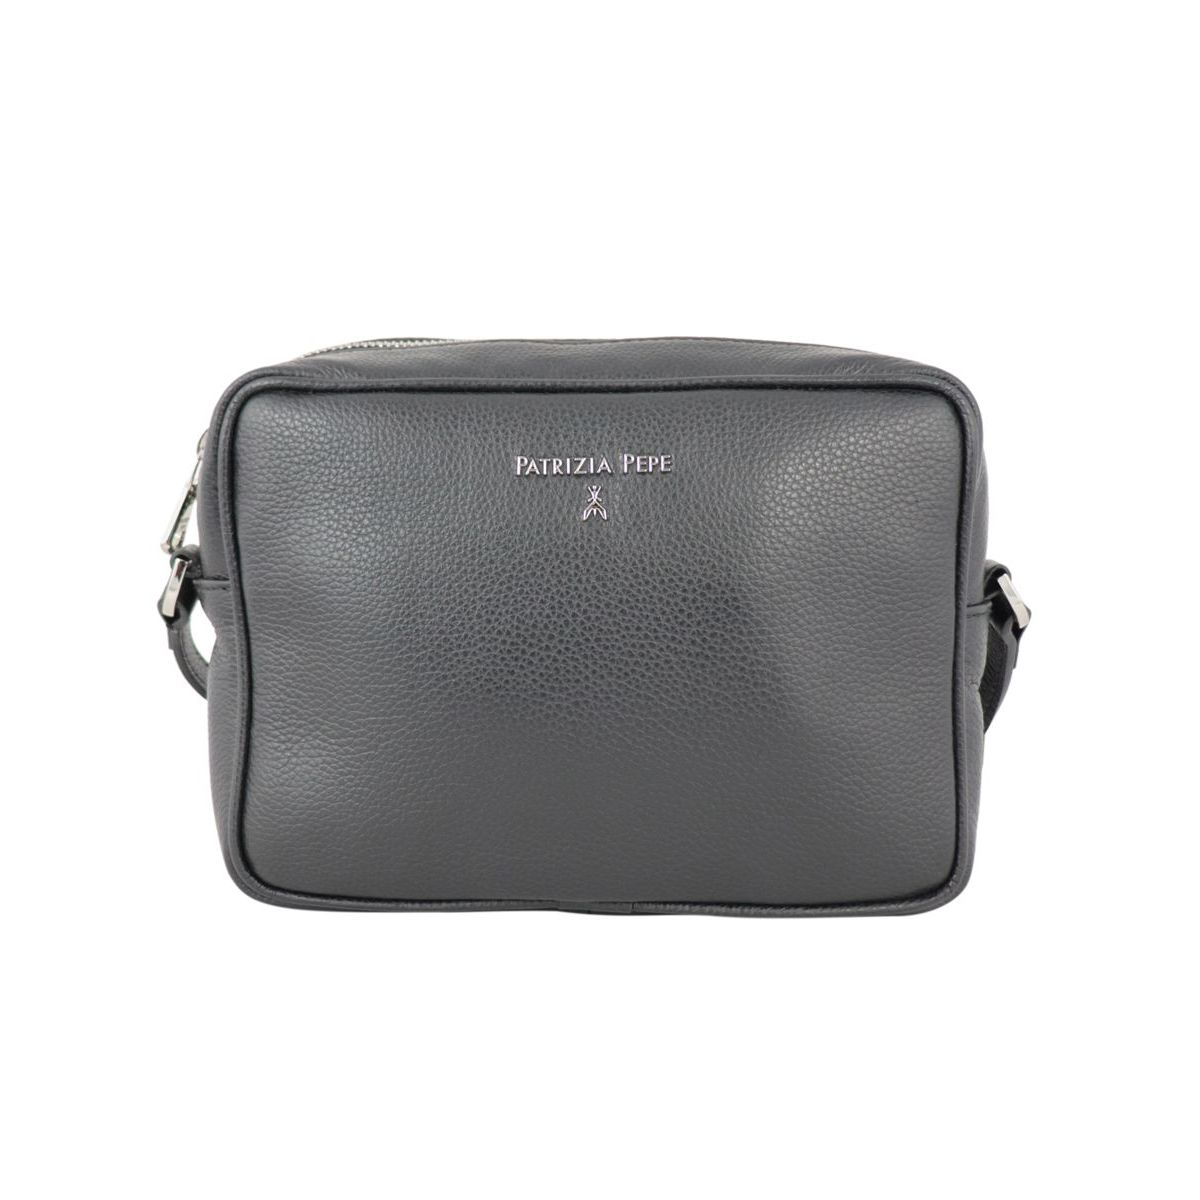 Small shoulder bag in textured leather with embossed metal logo Black Patrizia Pepe